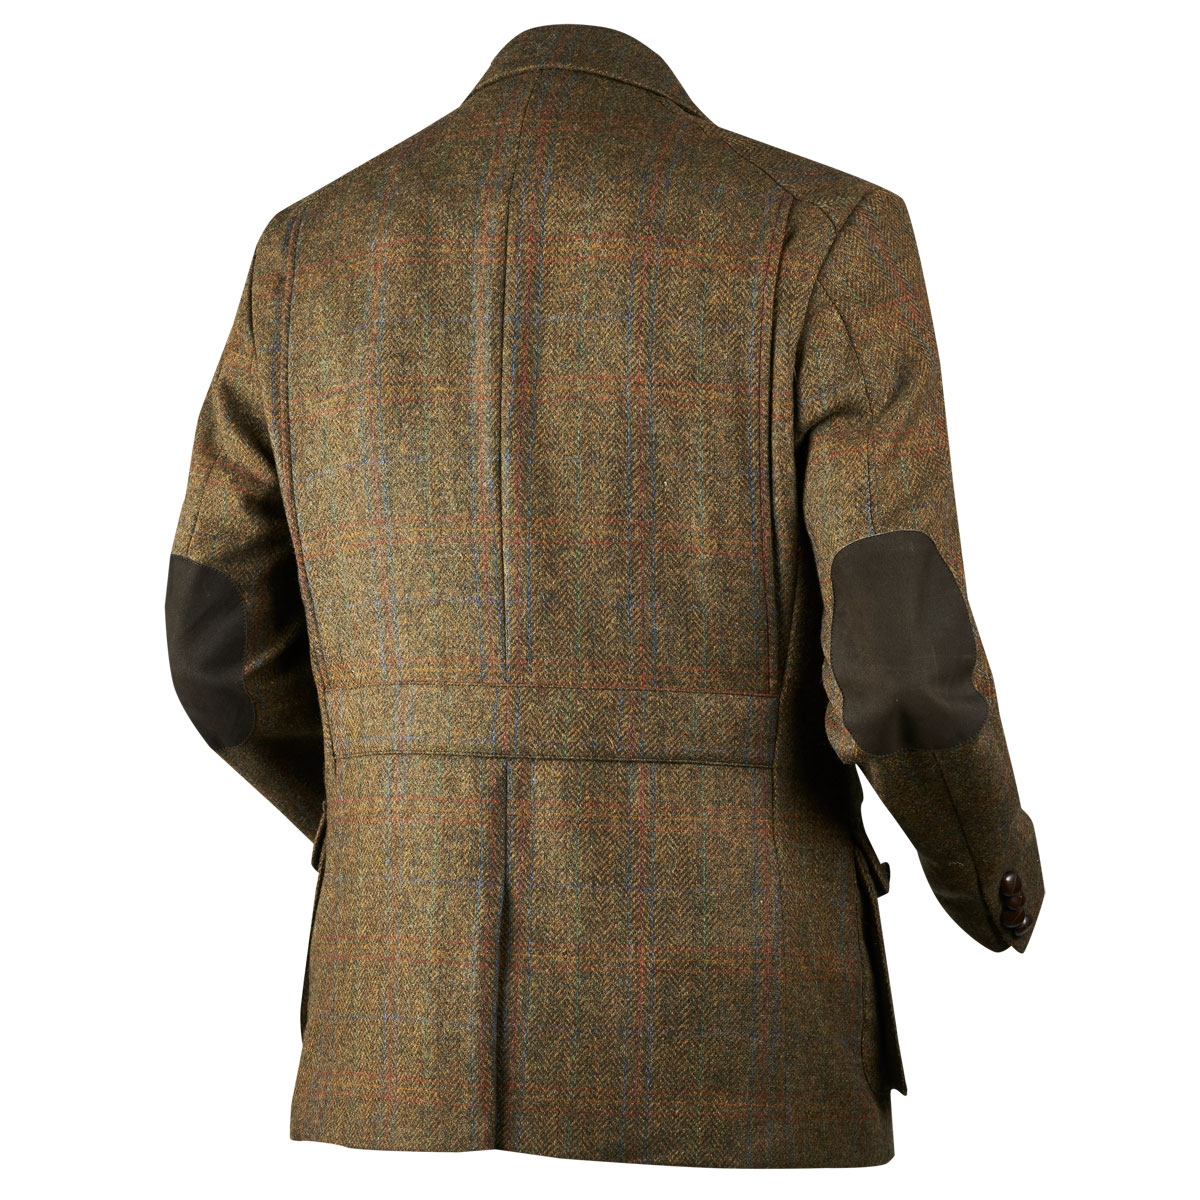 ... Image of Harkila Torridon Sports Jacket - Terragon Brown